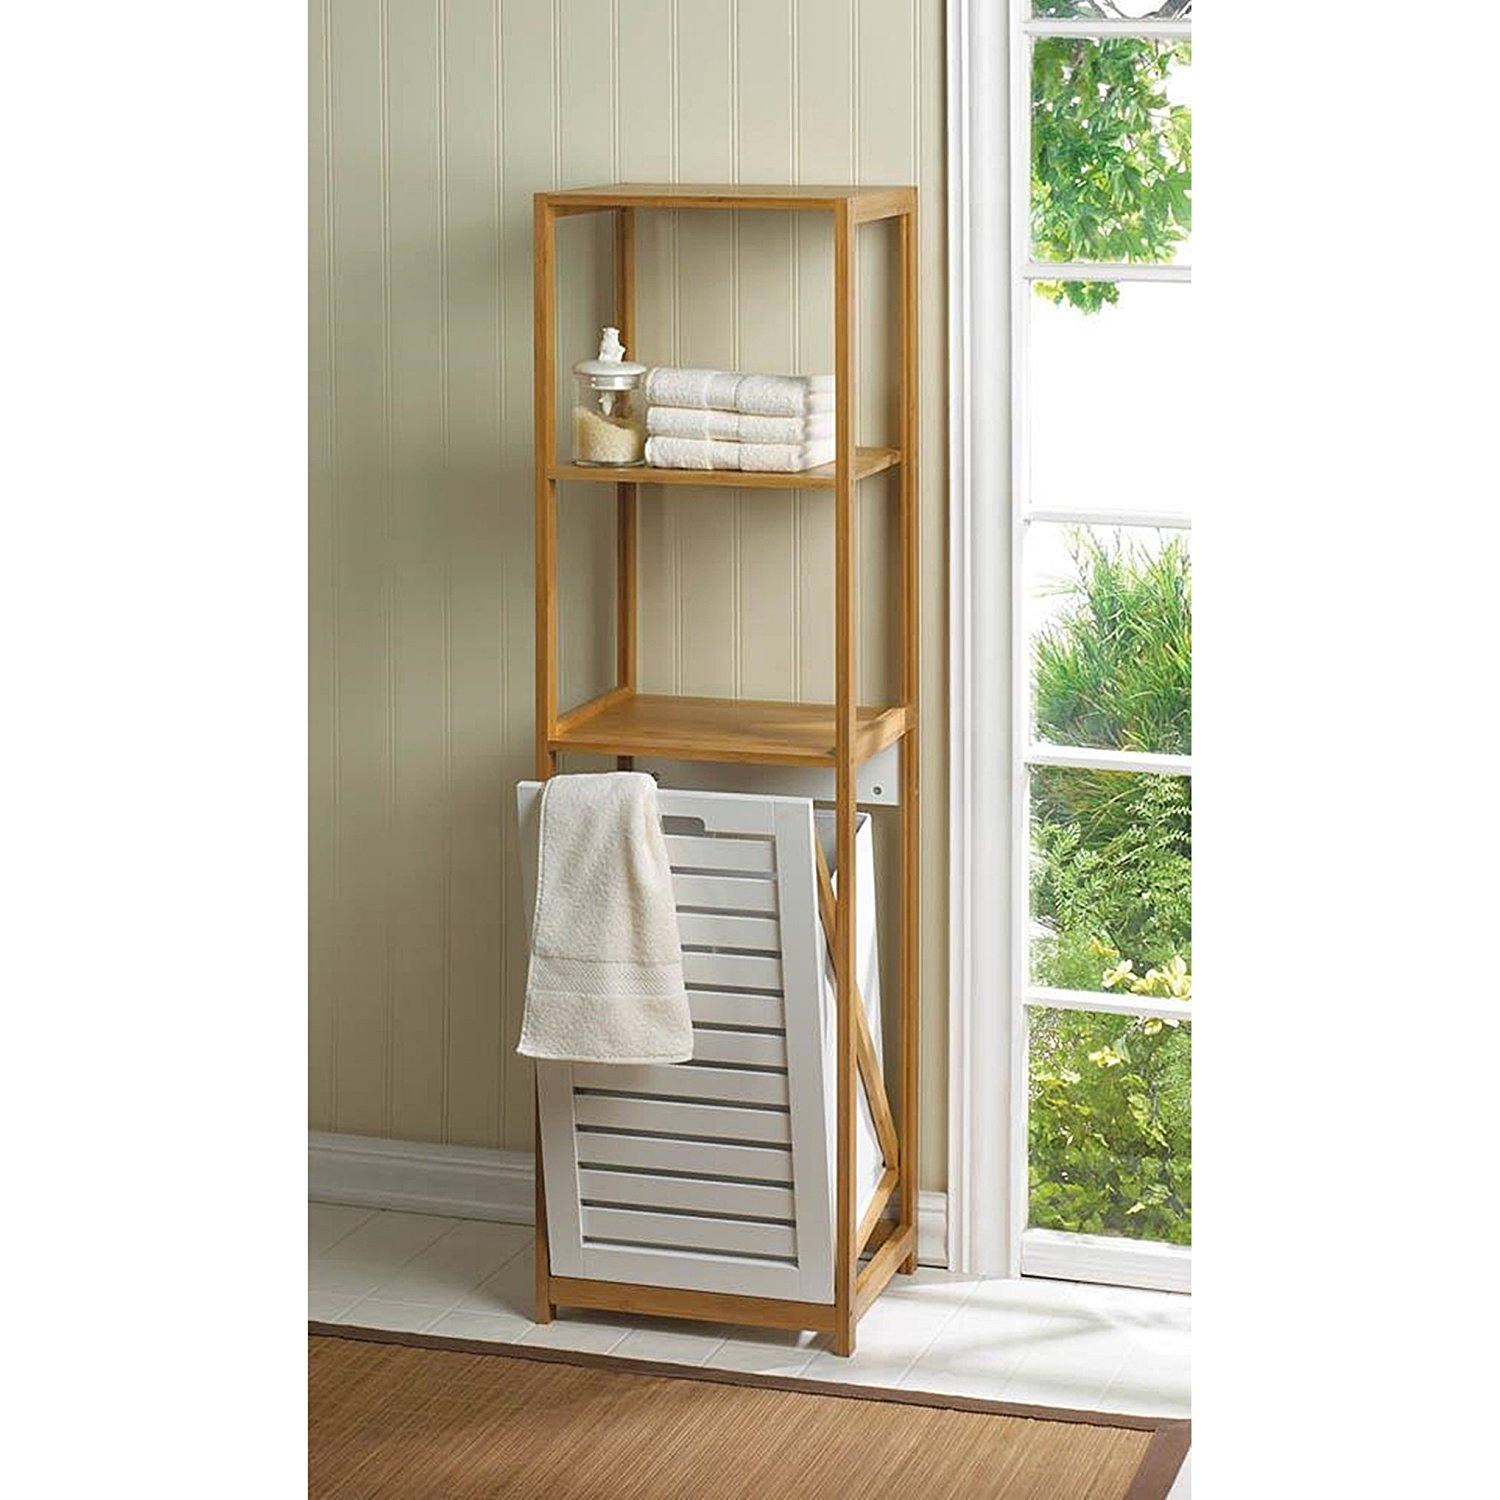 Sleek Bathroom Spa Tower With Louvered HamperSleek Bathroom Spa Tower With Louvered Hamper Share This Product: Sleek Bathroom Spa Tower With Louvered Hamper